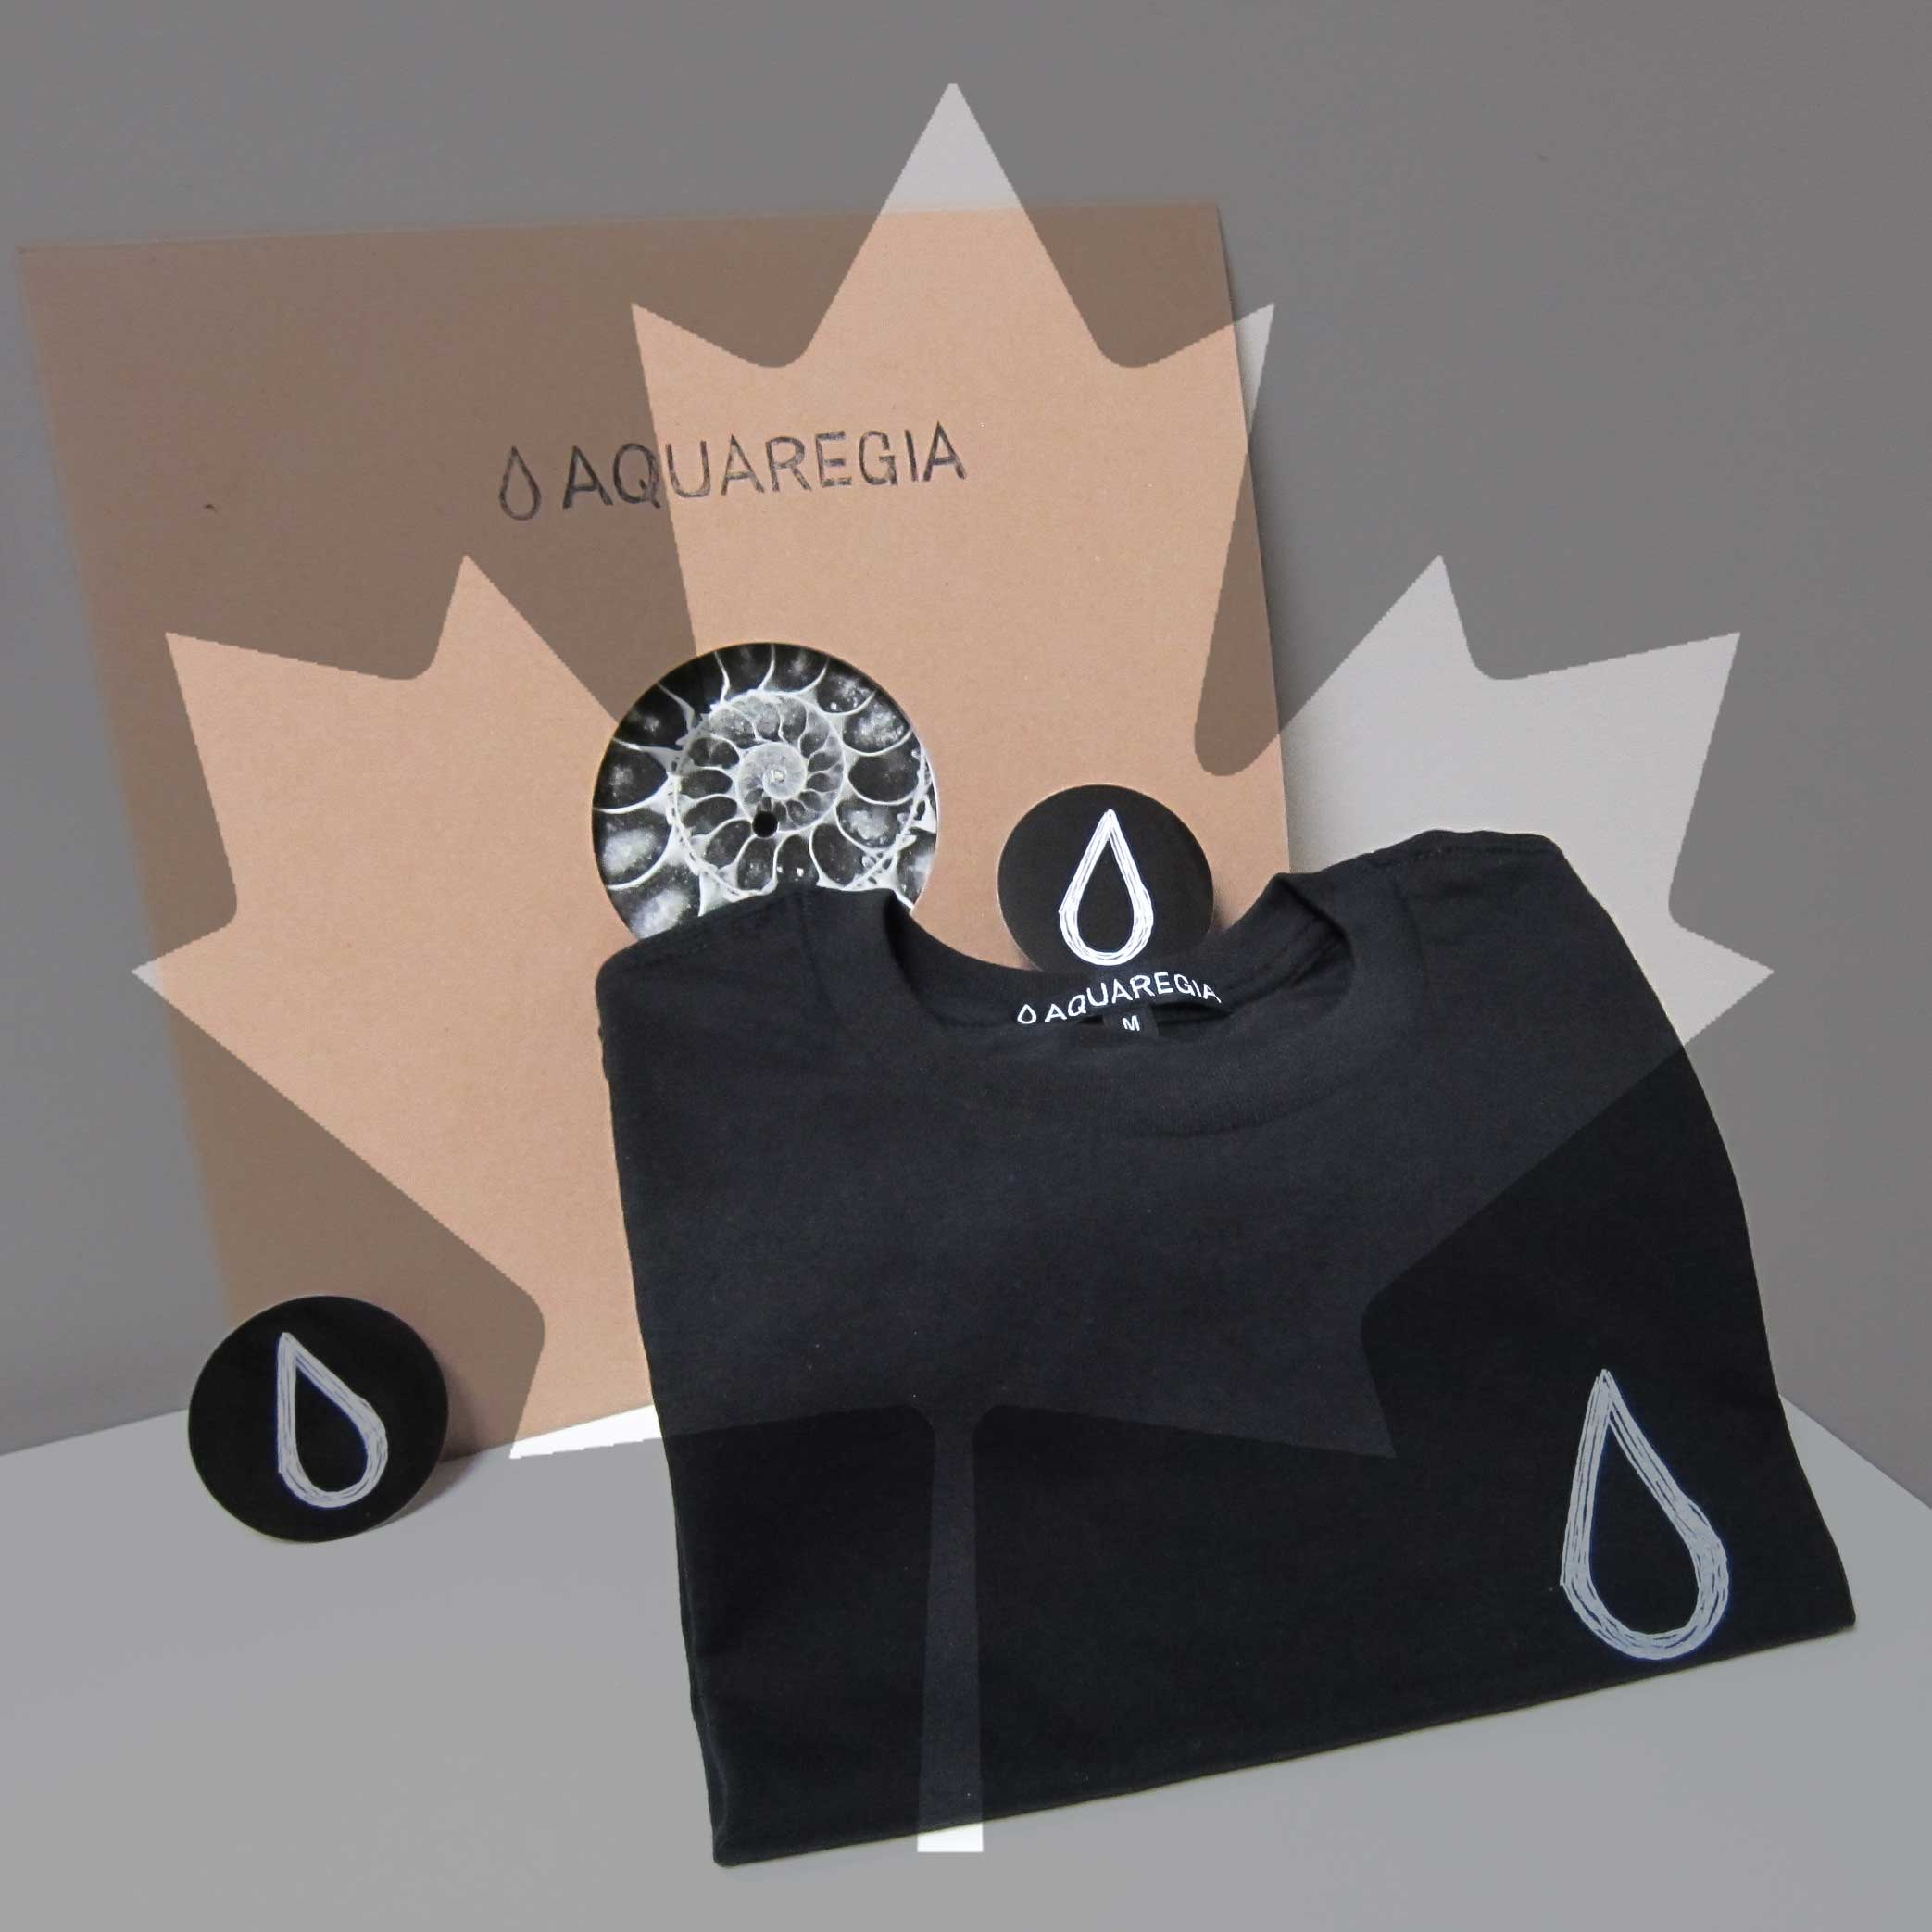 The Aquaregia Canada day sale allows you to save when you buy a vinyl and a t-shirt together.